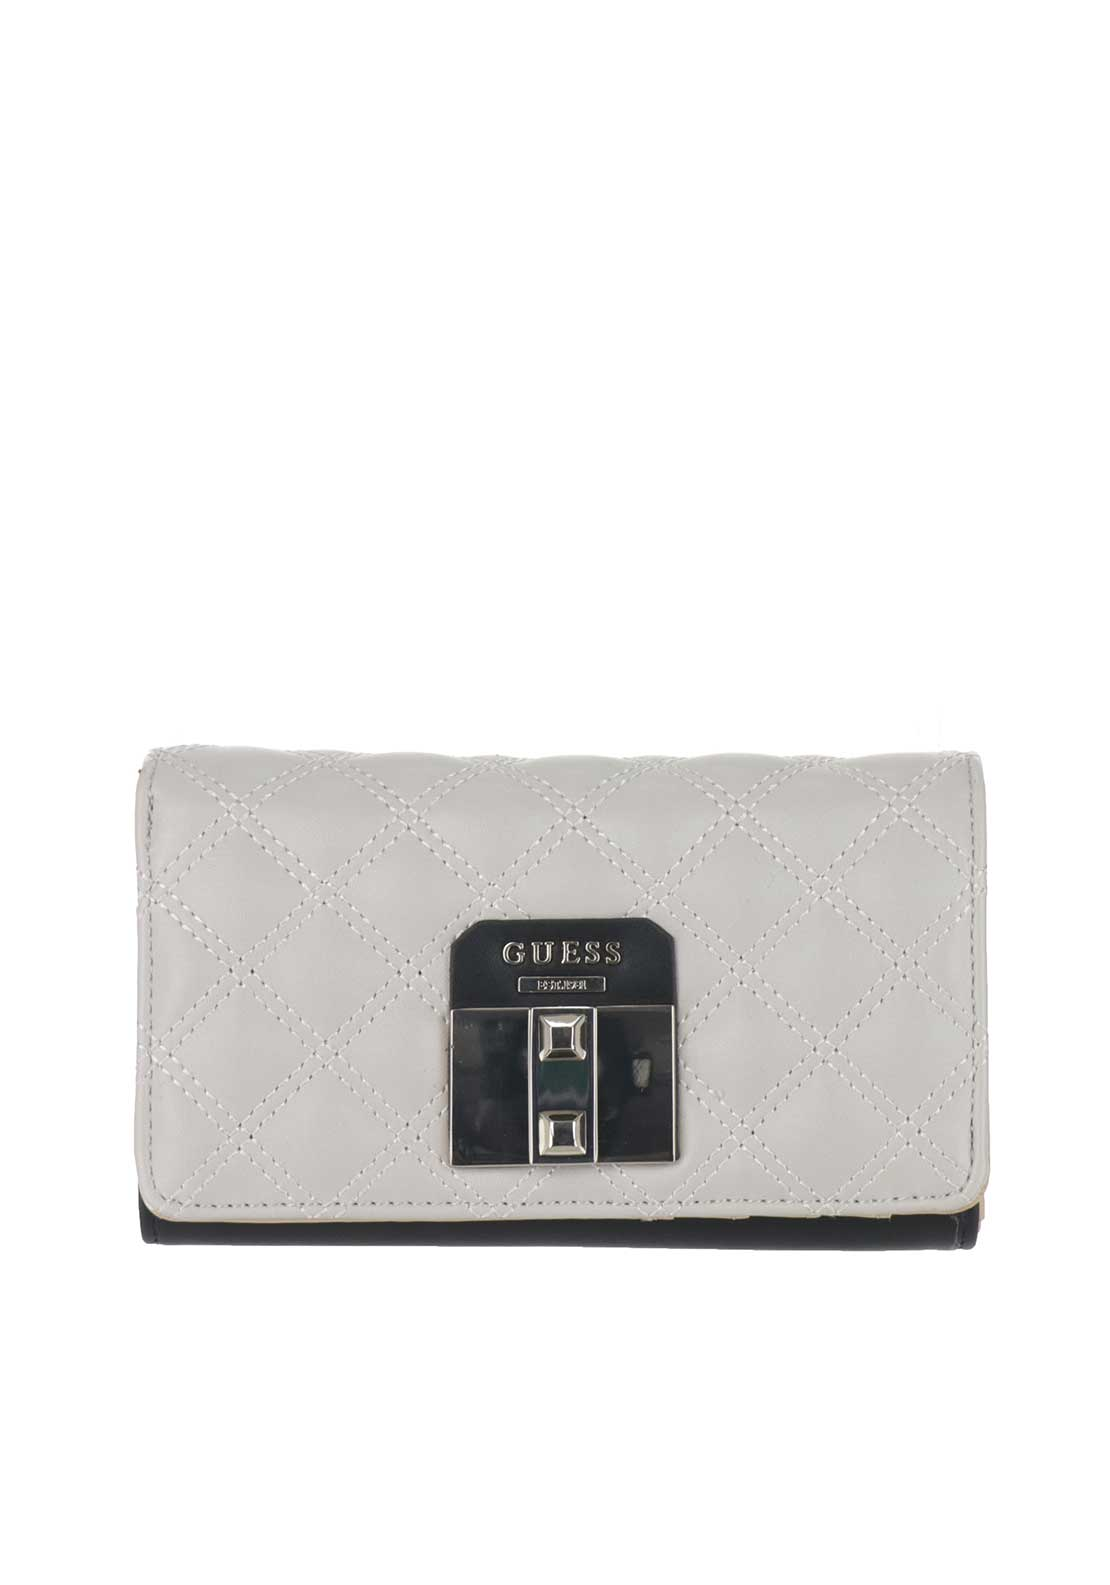 Guess Rebel Roma SLG Rollover Case Purse, Stone Multi